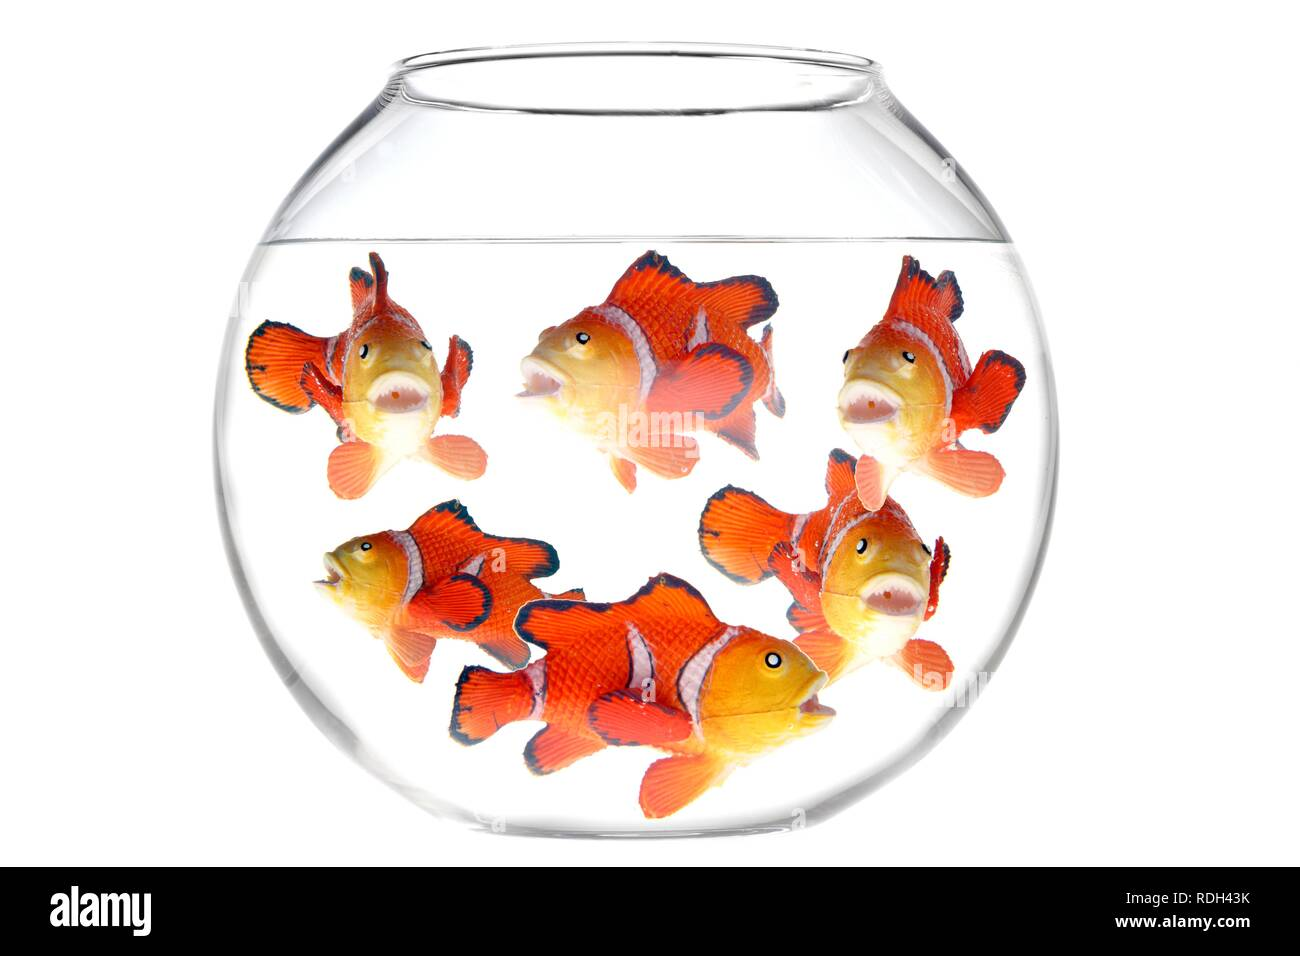 Lots of toy fish in a fish bowl, illustration - Stock Image